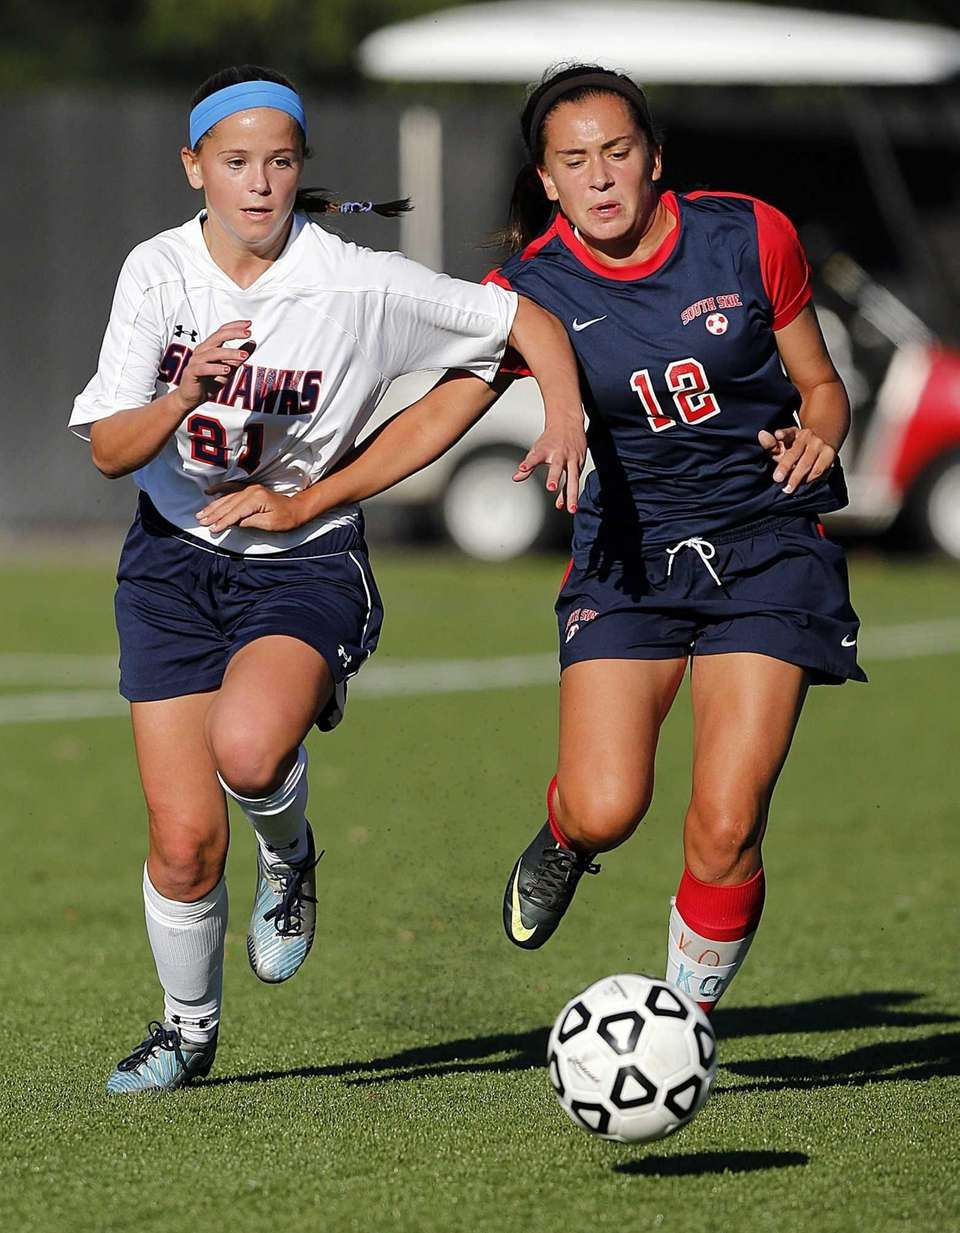 Cold Spring Harbor's Katie Hudson and South Side's